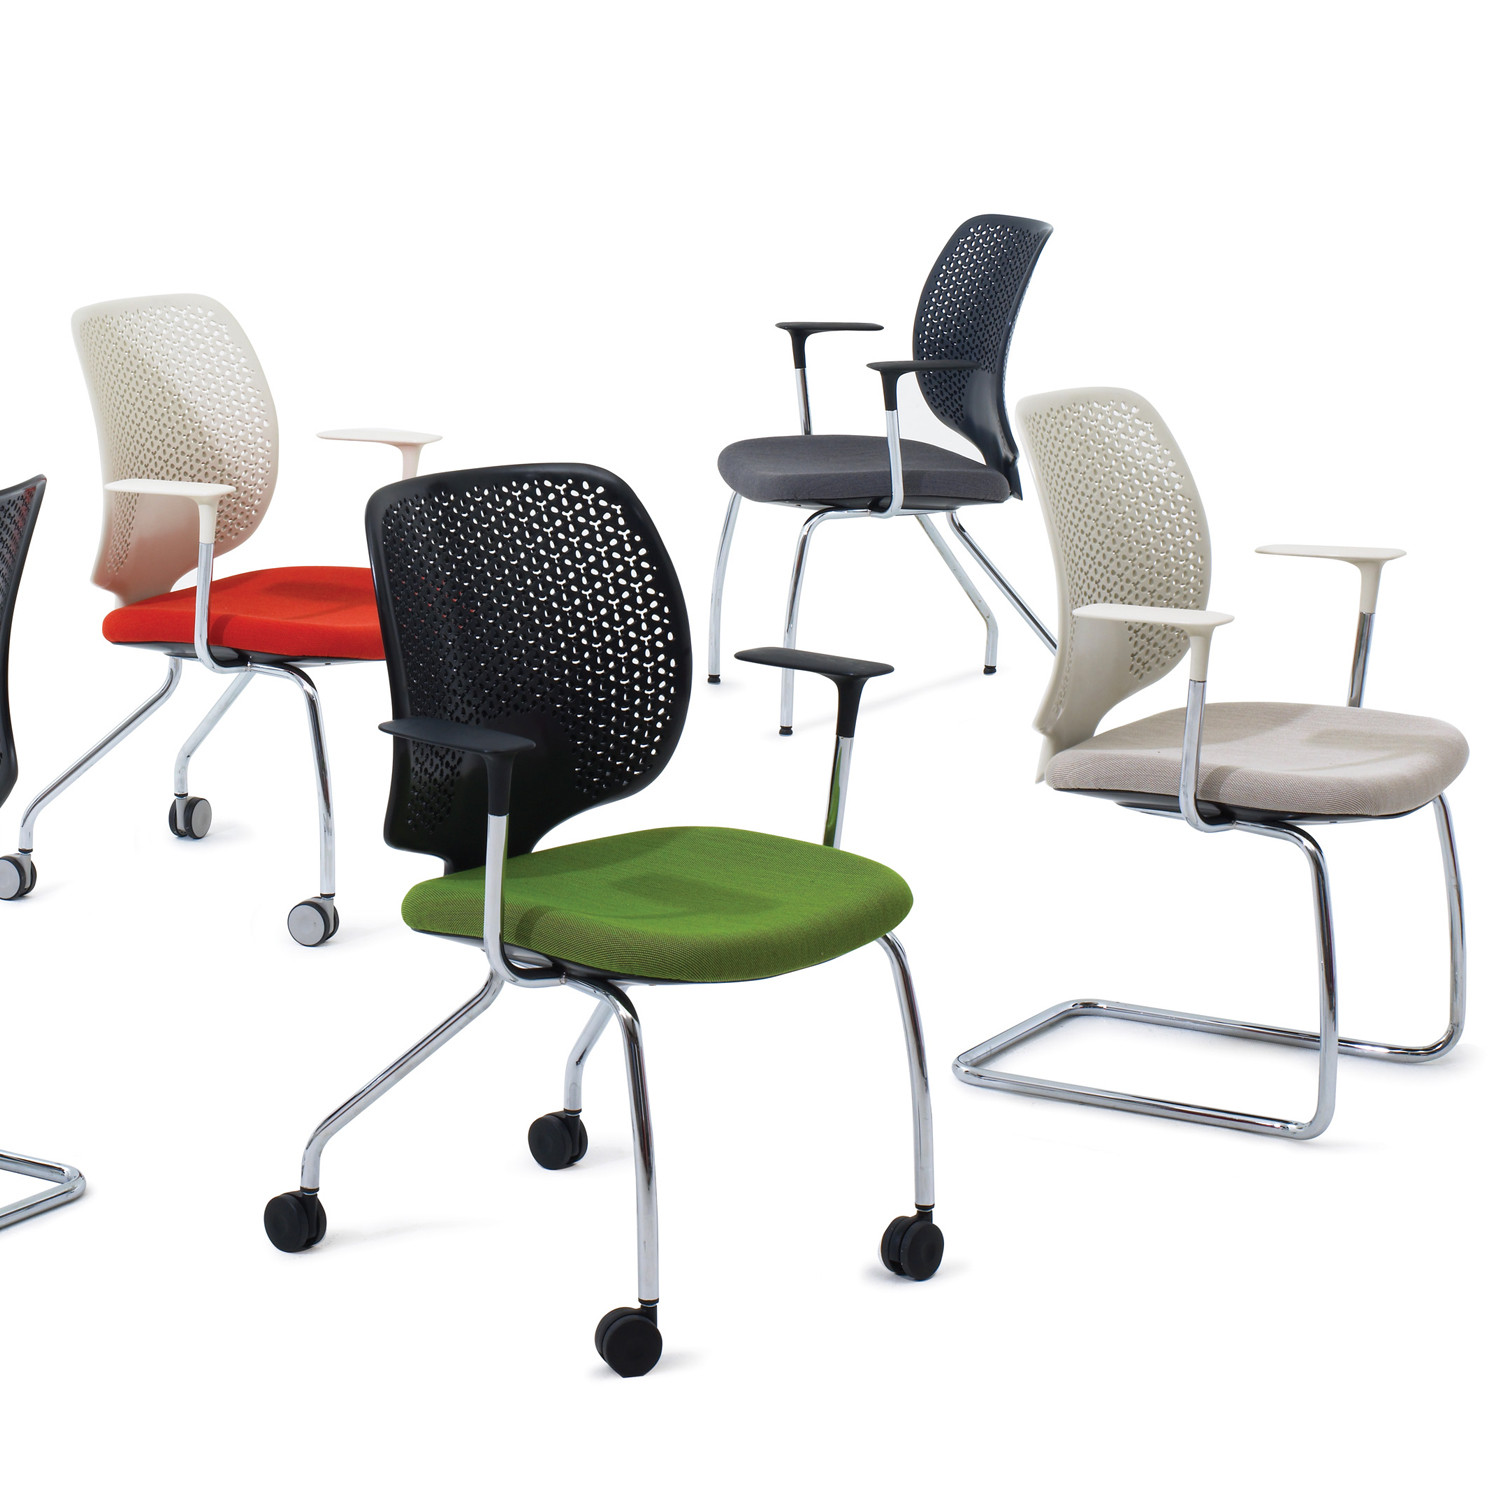 Tso Chair Collection